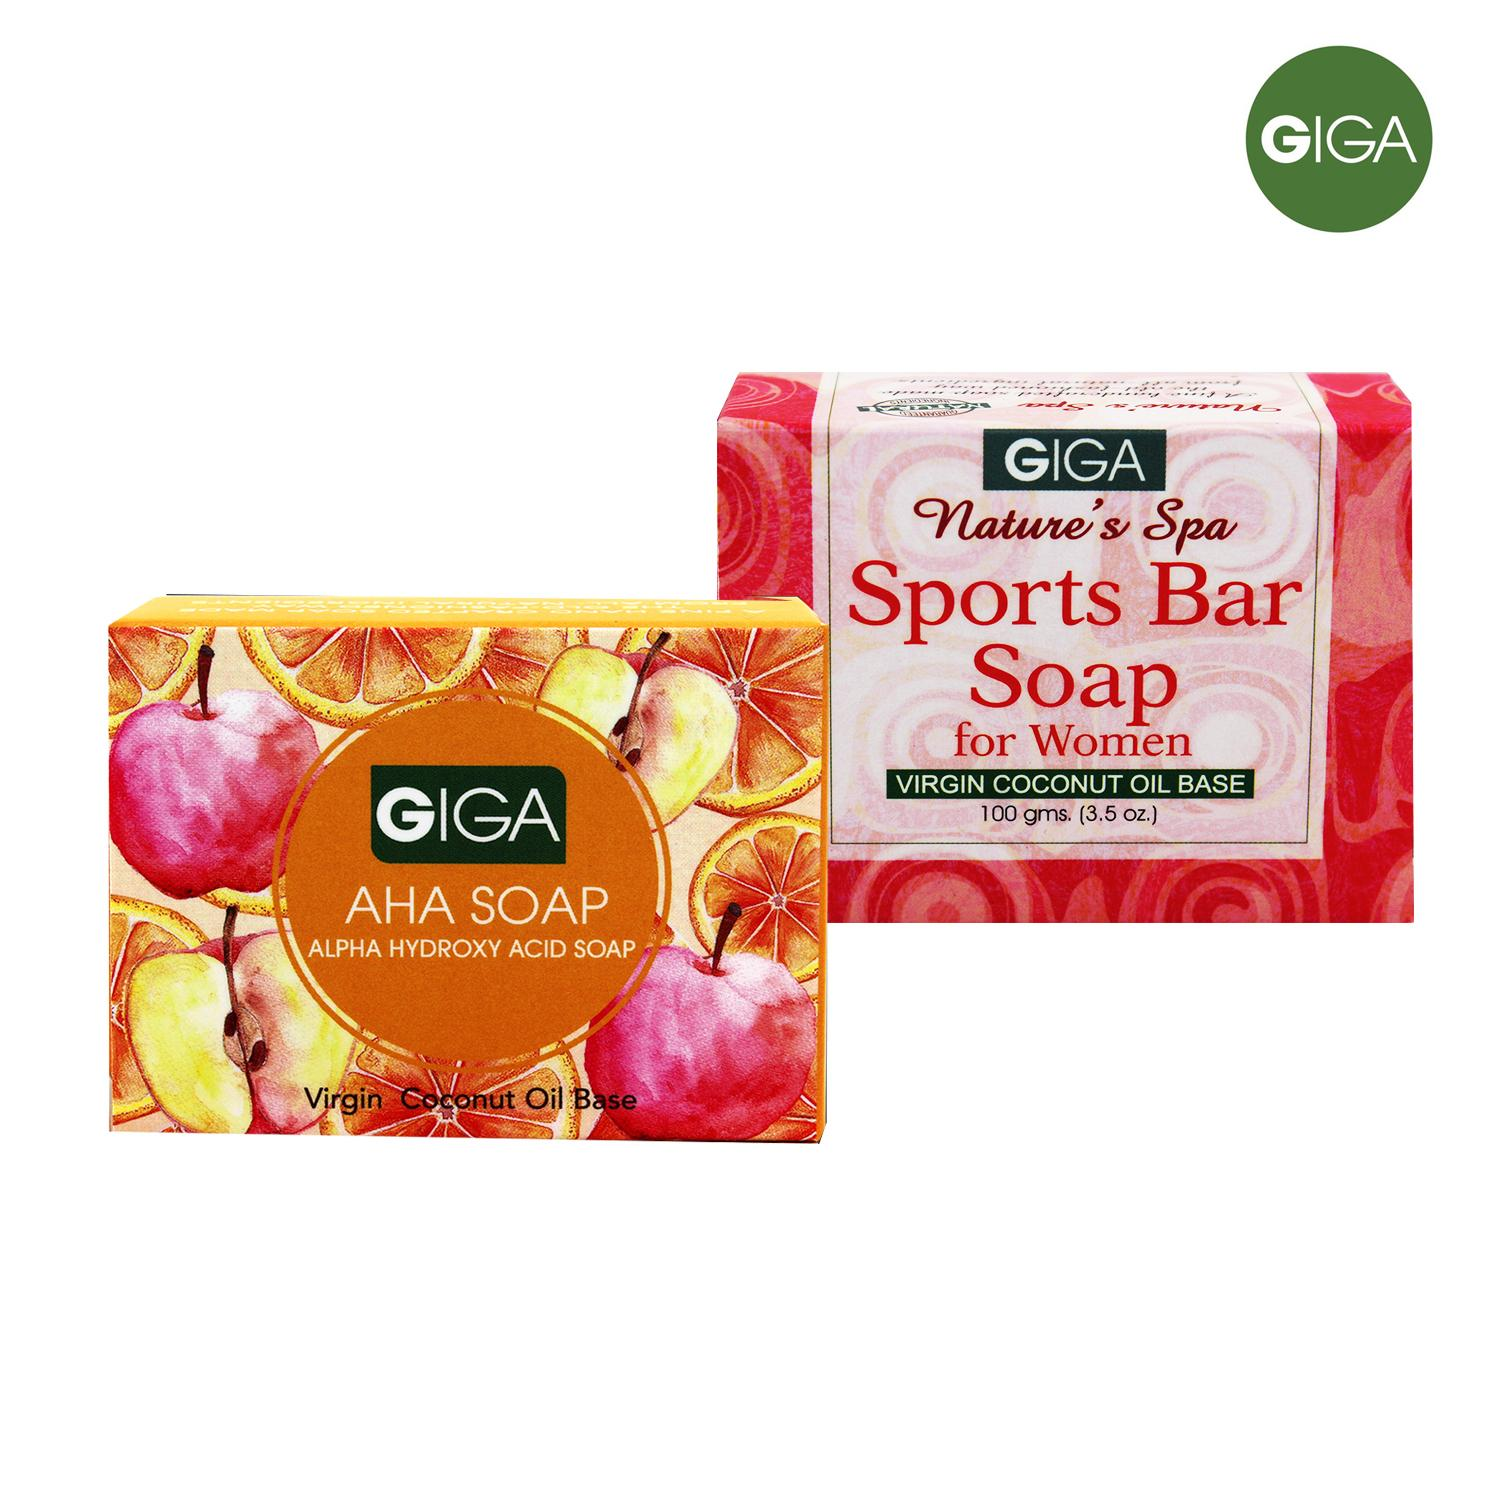 Giga Assorted Soap (AHA Soap/Sports Bar for Women) 100g Set of 2